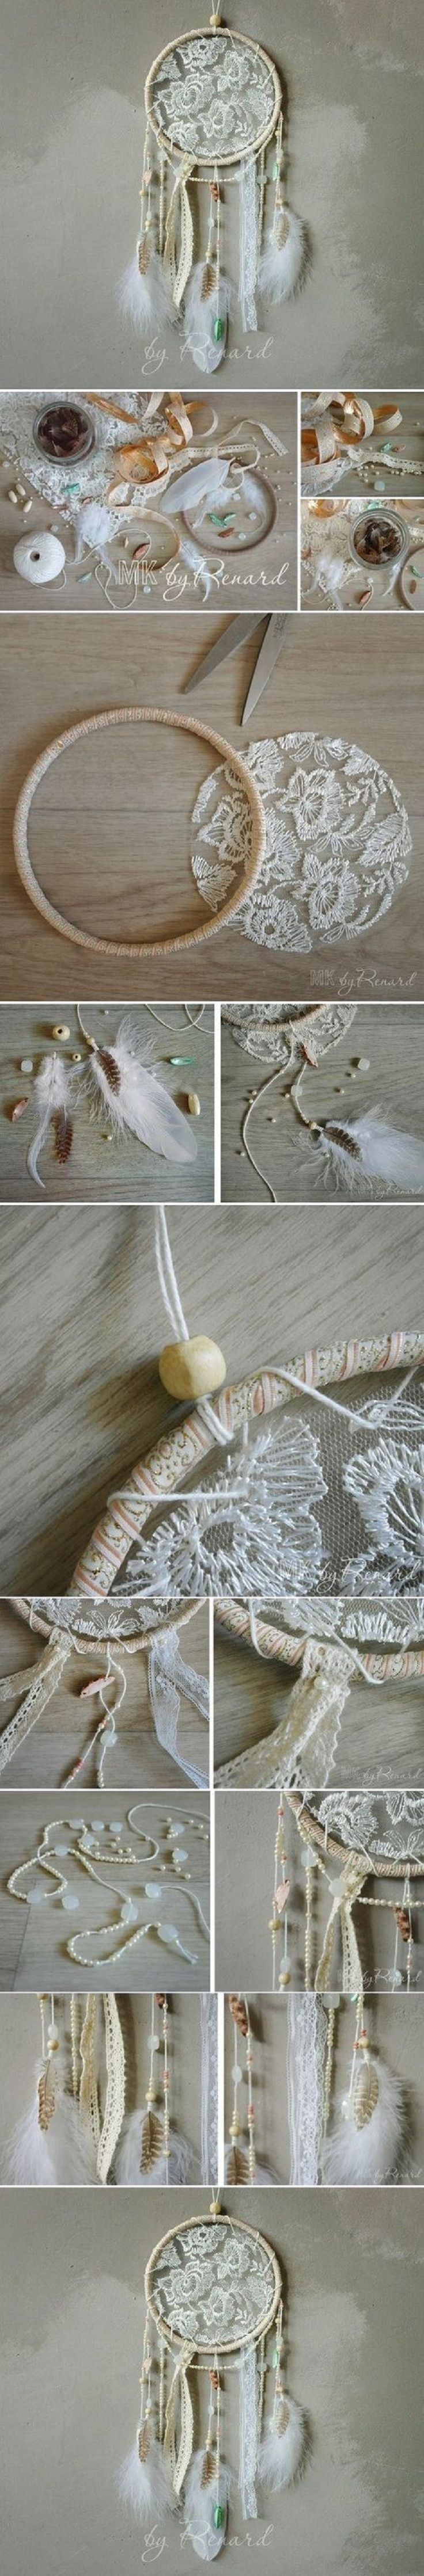 Caught On A Whim: DIY: Big Dreams Dreamcatcher Like this.